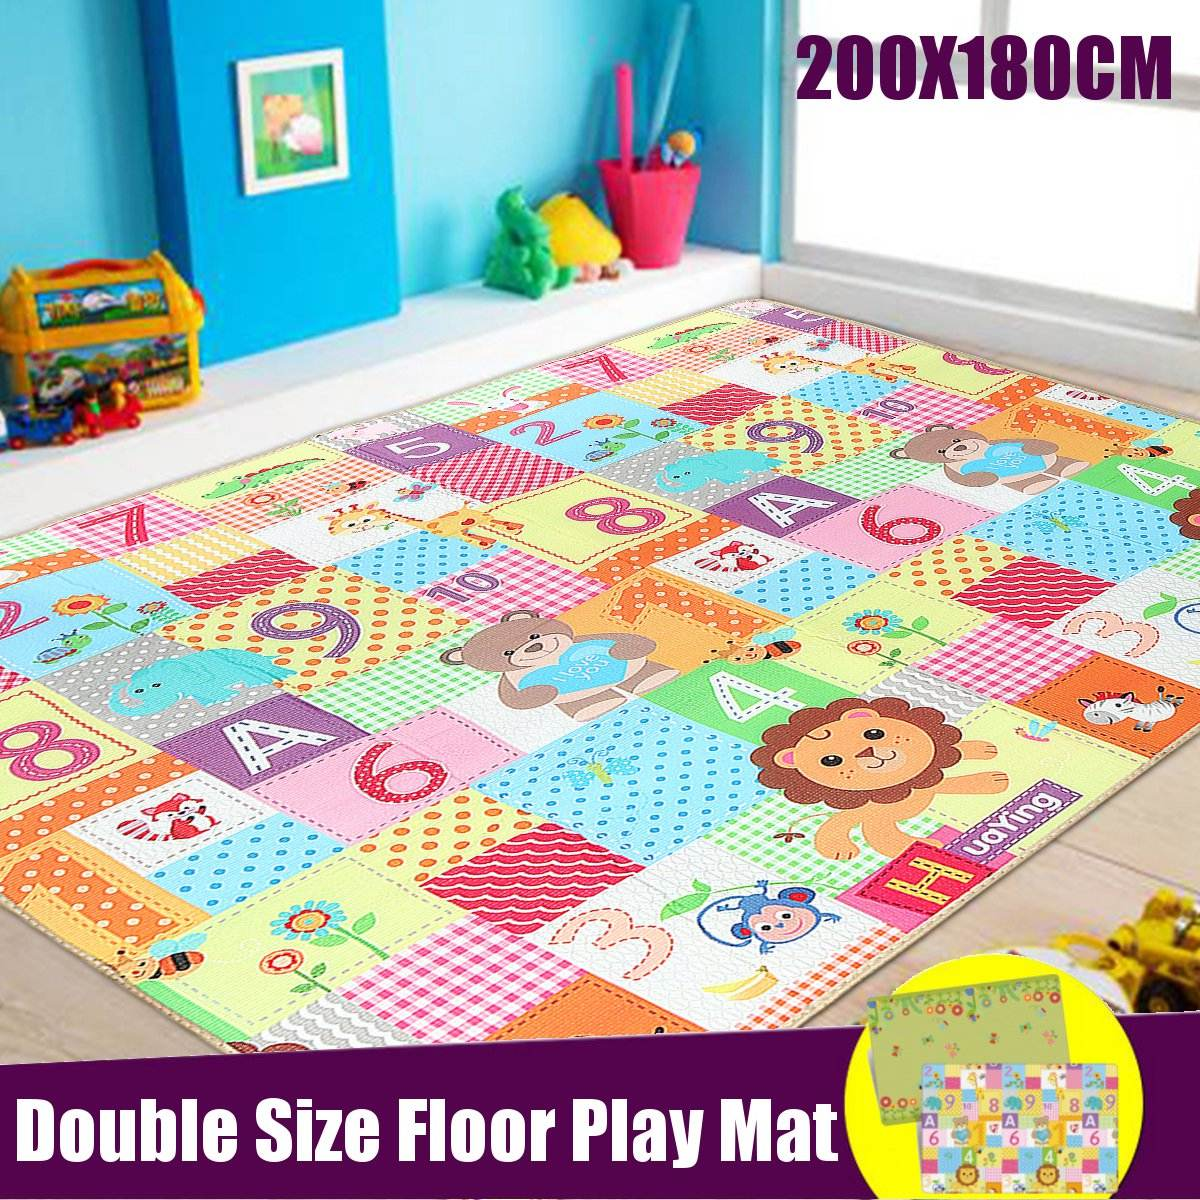 LDPE Infant Baby Crawling Play Mat 200x180cm Thick Cartoon Game Rug Cover Puzzle Mat Folding Play Mats Waterproof Floor Carpet